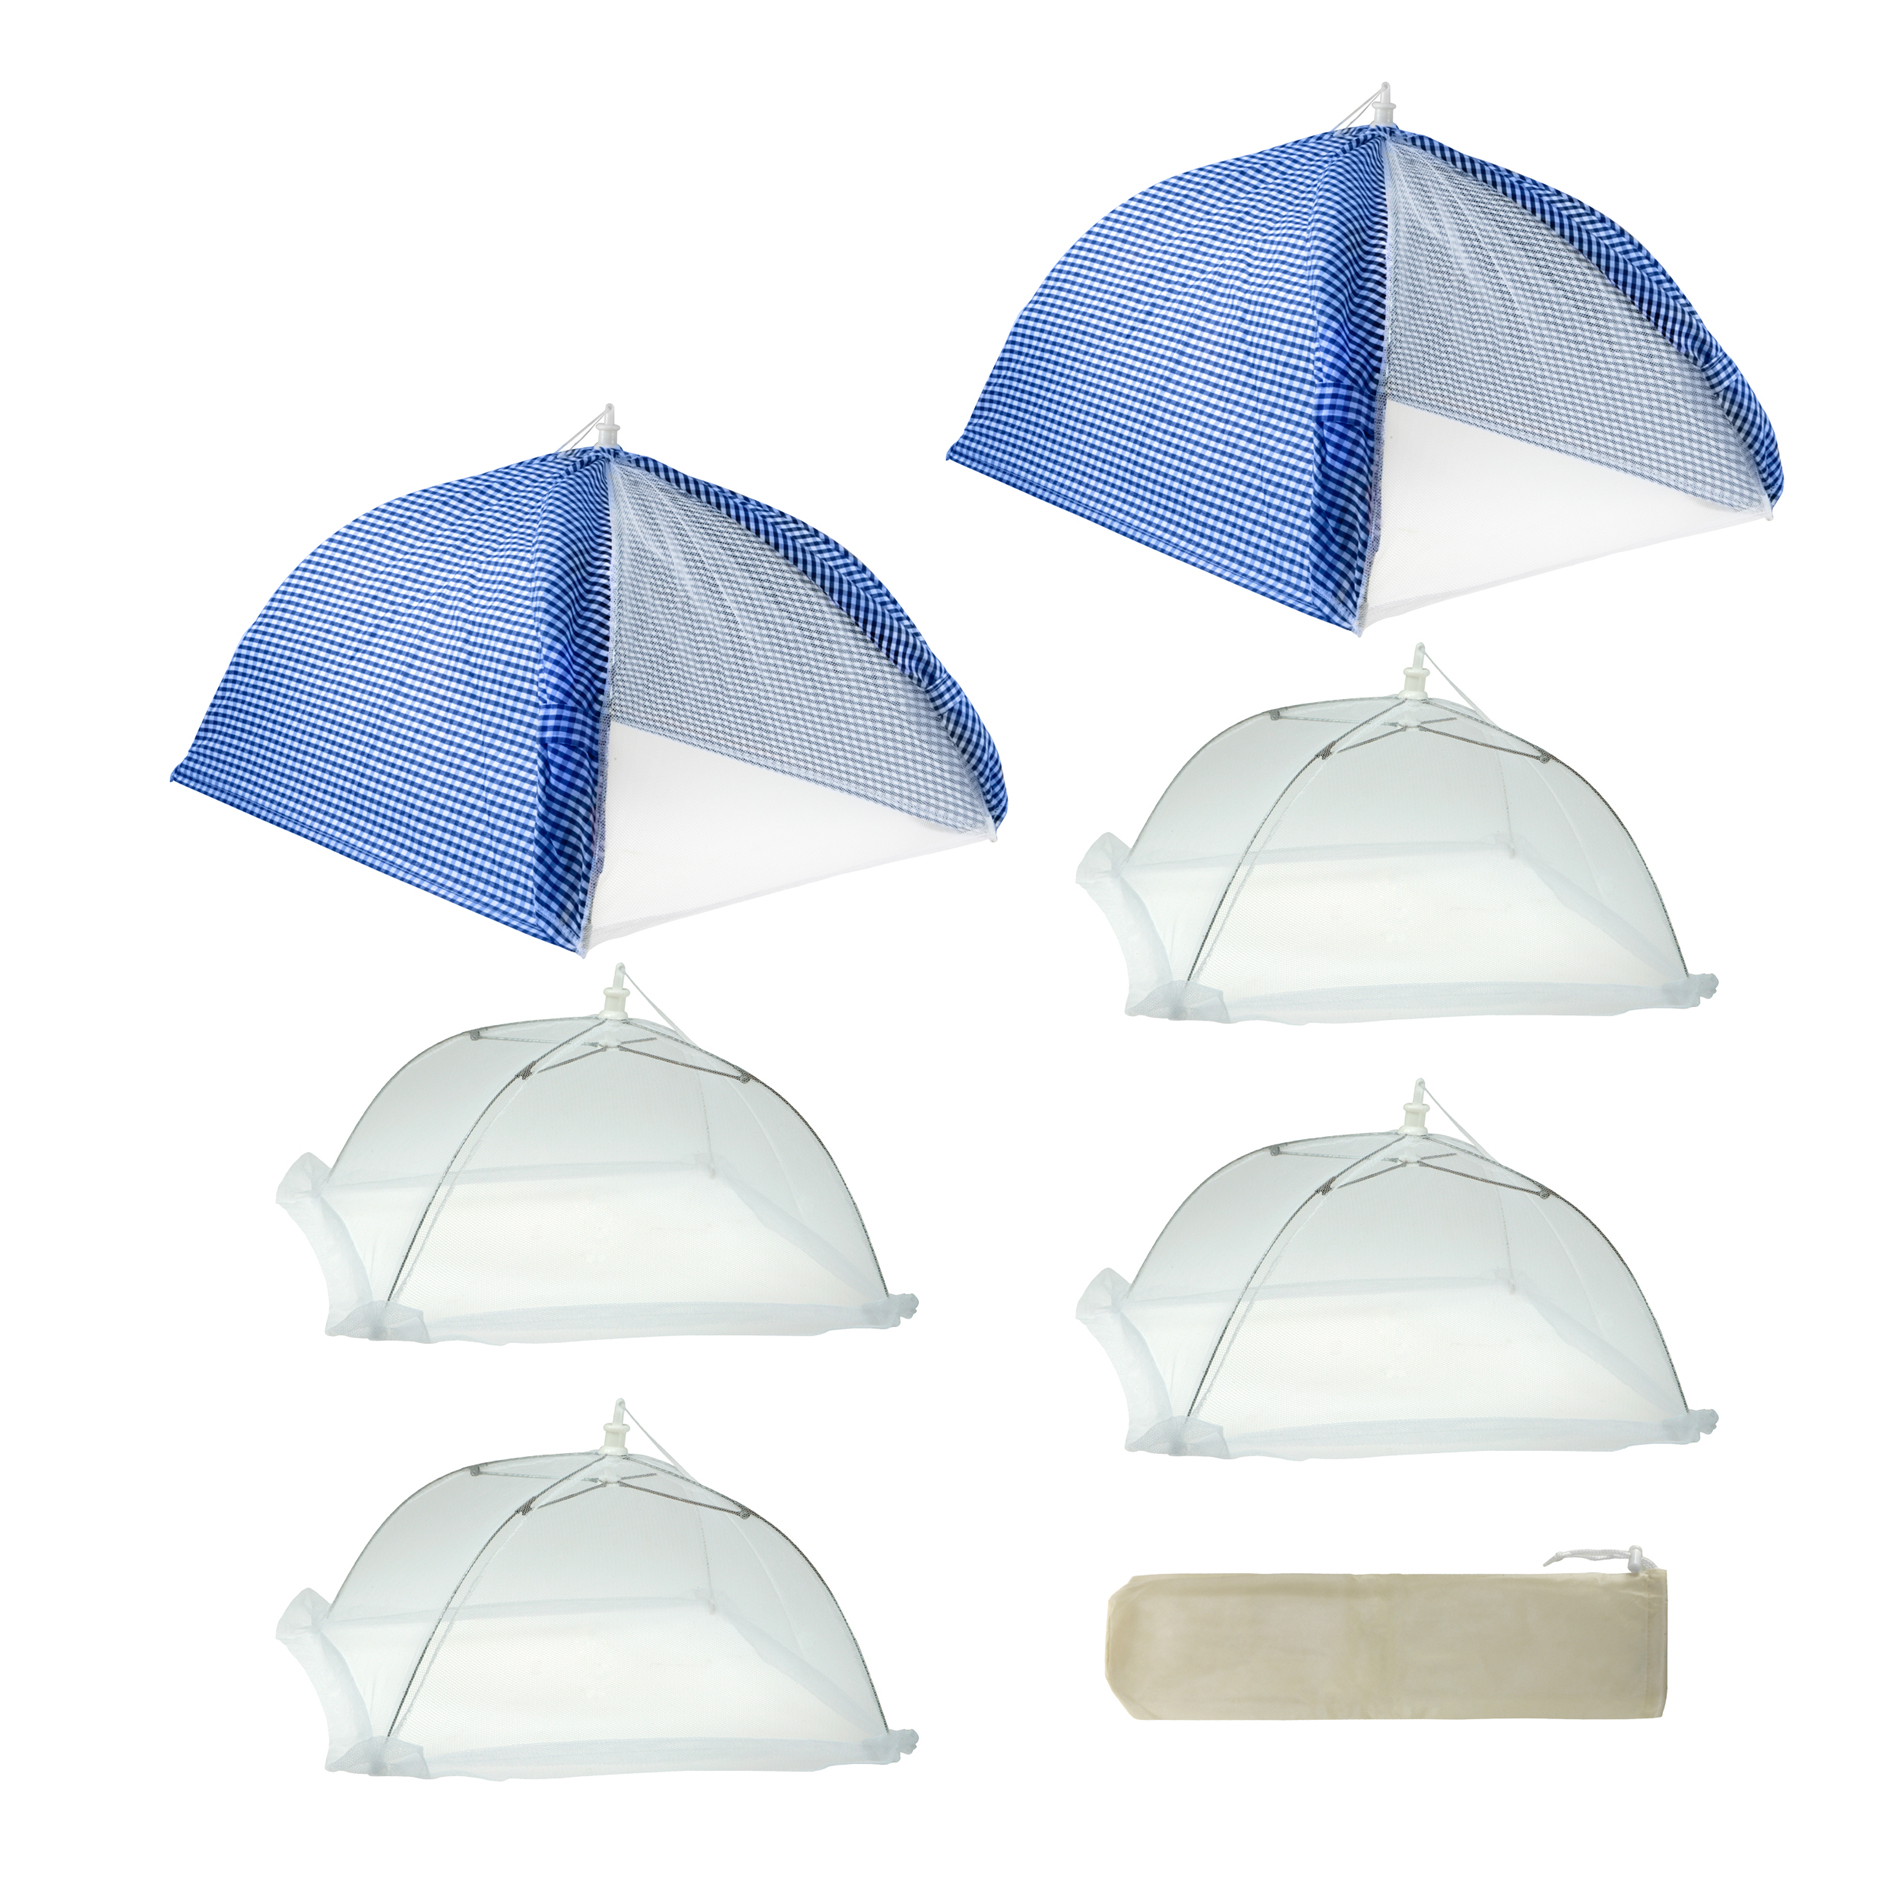 Cabana Style 7-Piece Blue Food Tent Kit